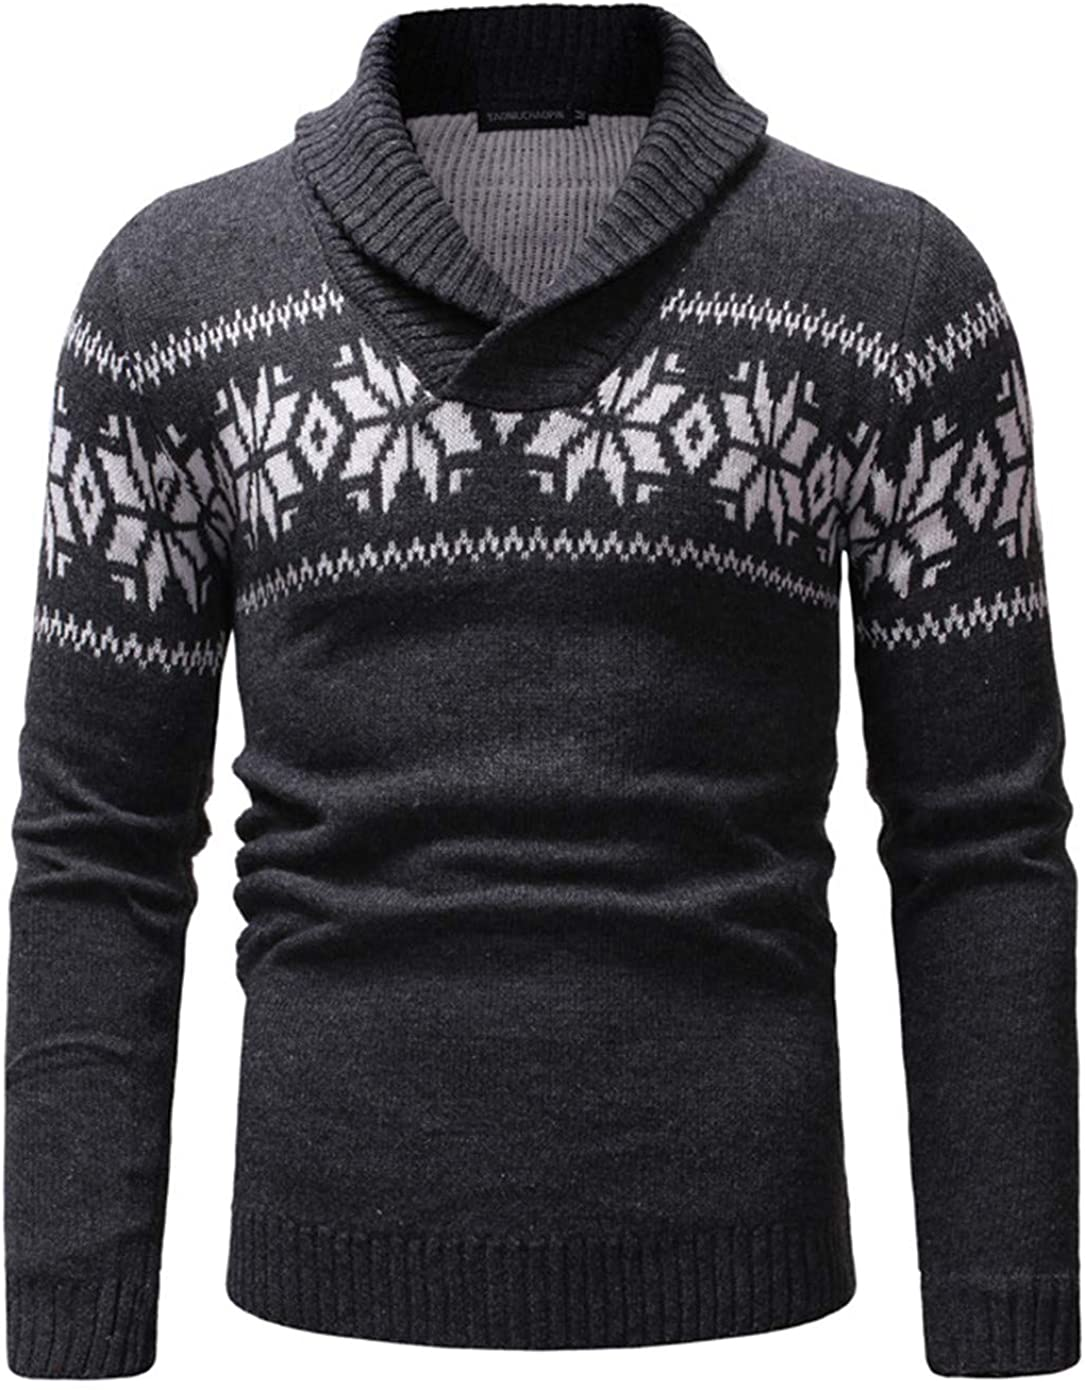 Soluo Mens Knitted Sweaters Shawl Collar Slim Fit Pullover Long Sleeve Outwear Fall Winter Casual Knit Sweater (Dark Gray,XX-Large)